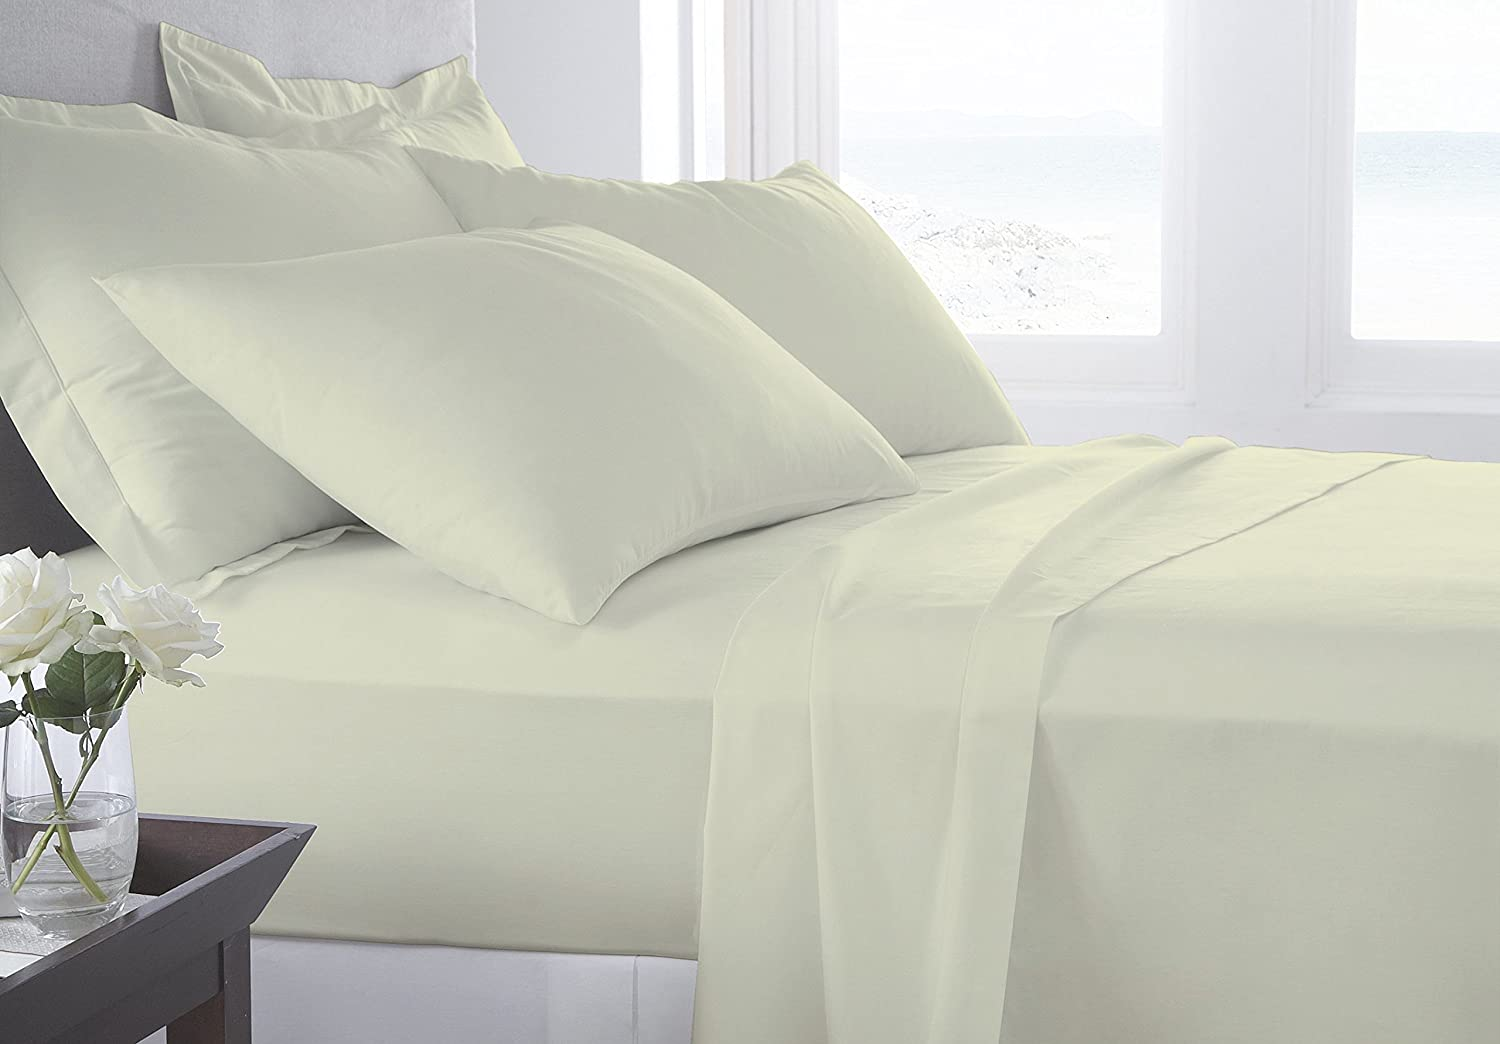 4 Piece Bed Sheet Set with Extra deep pocket 20 inch deep Premium Range 100% Egyptian Cotton 600 Thread Count By Kotton Culture (Luxurious and Hypoallergenic) (Ivory, King) FBASSIvory619K